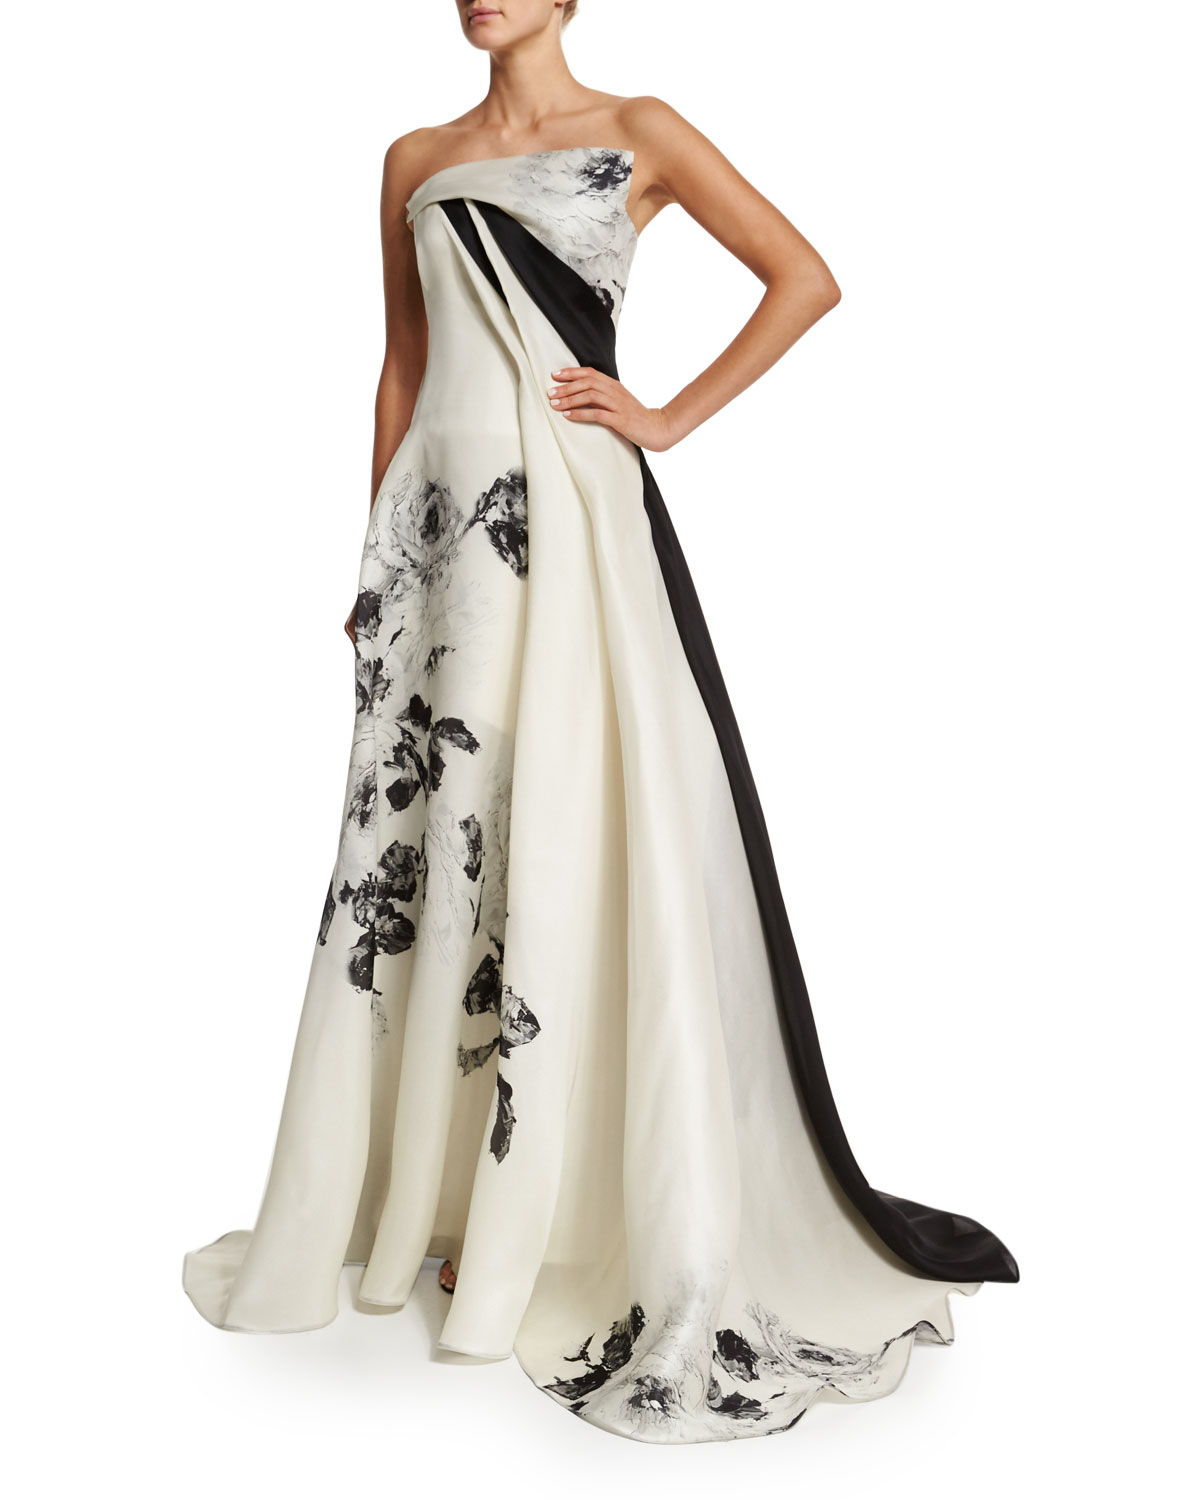 Cheap Sale Get Authentic View For Sale Rubin Singer printed strapless dress m8p7q8J